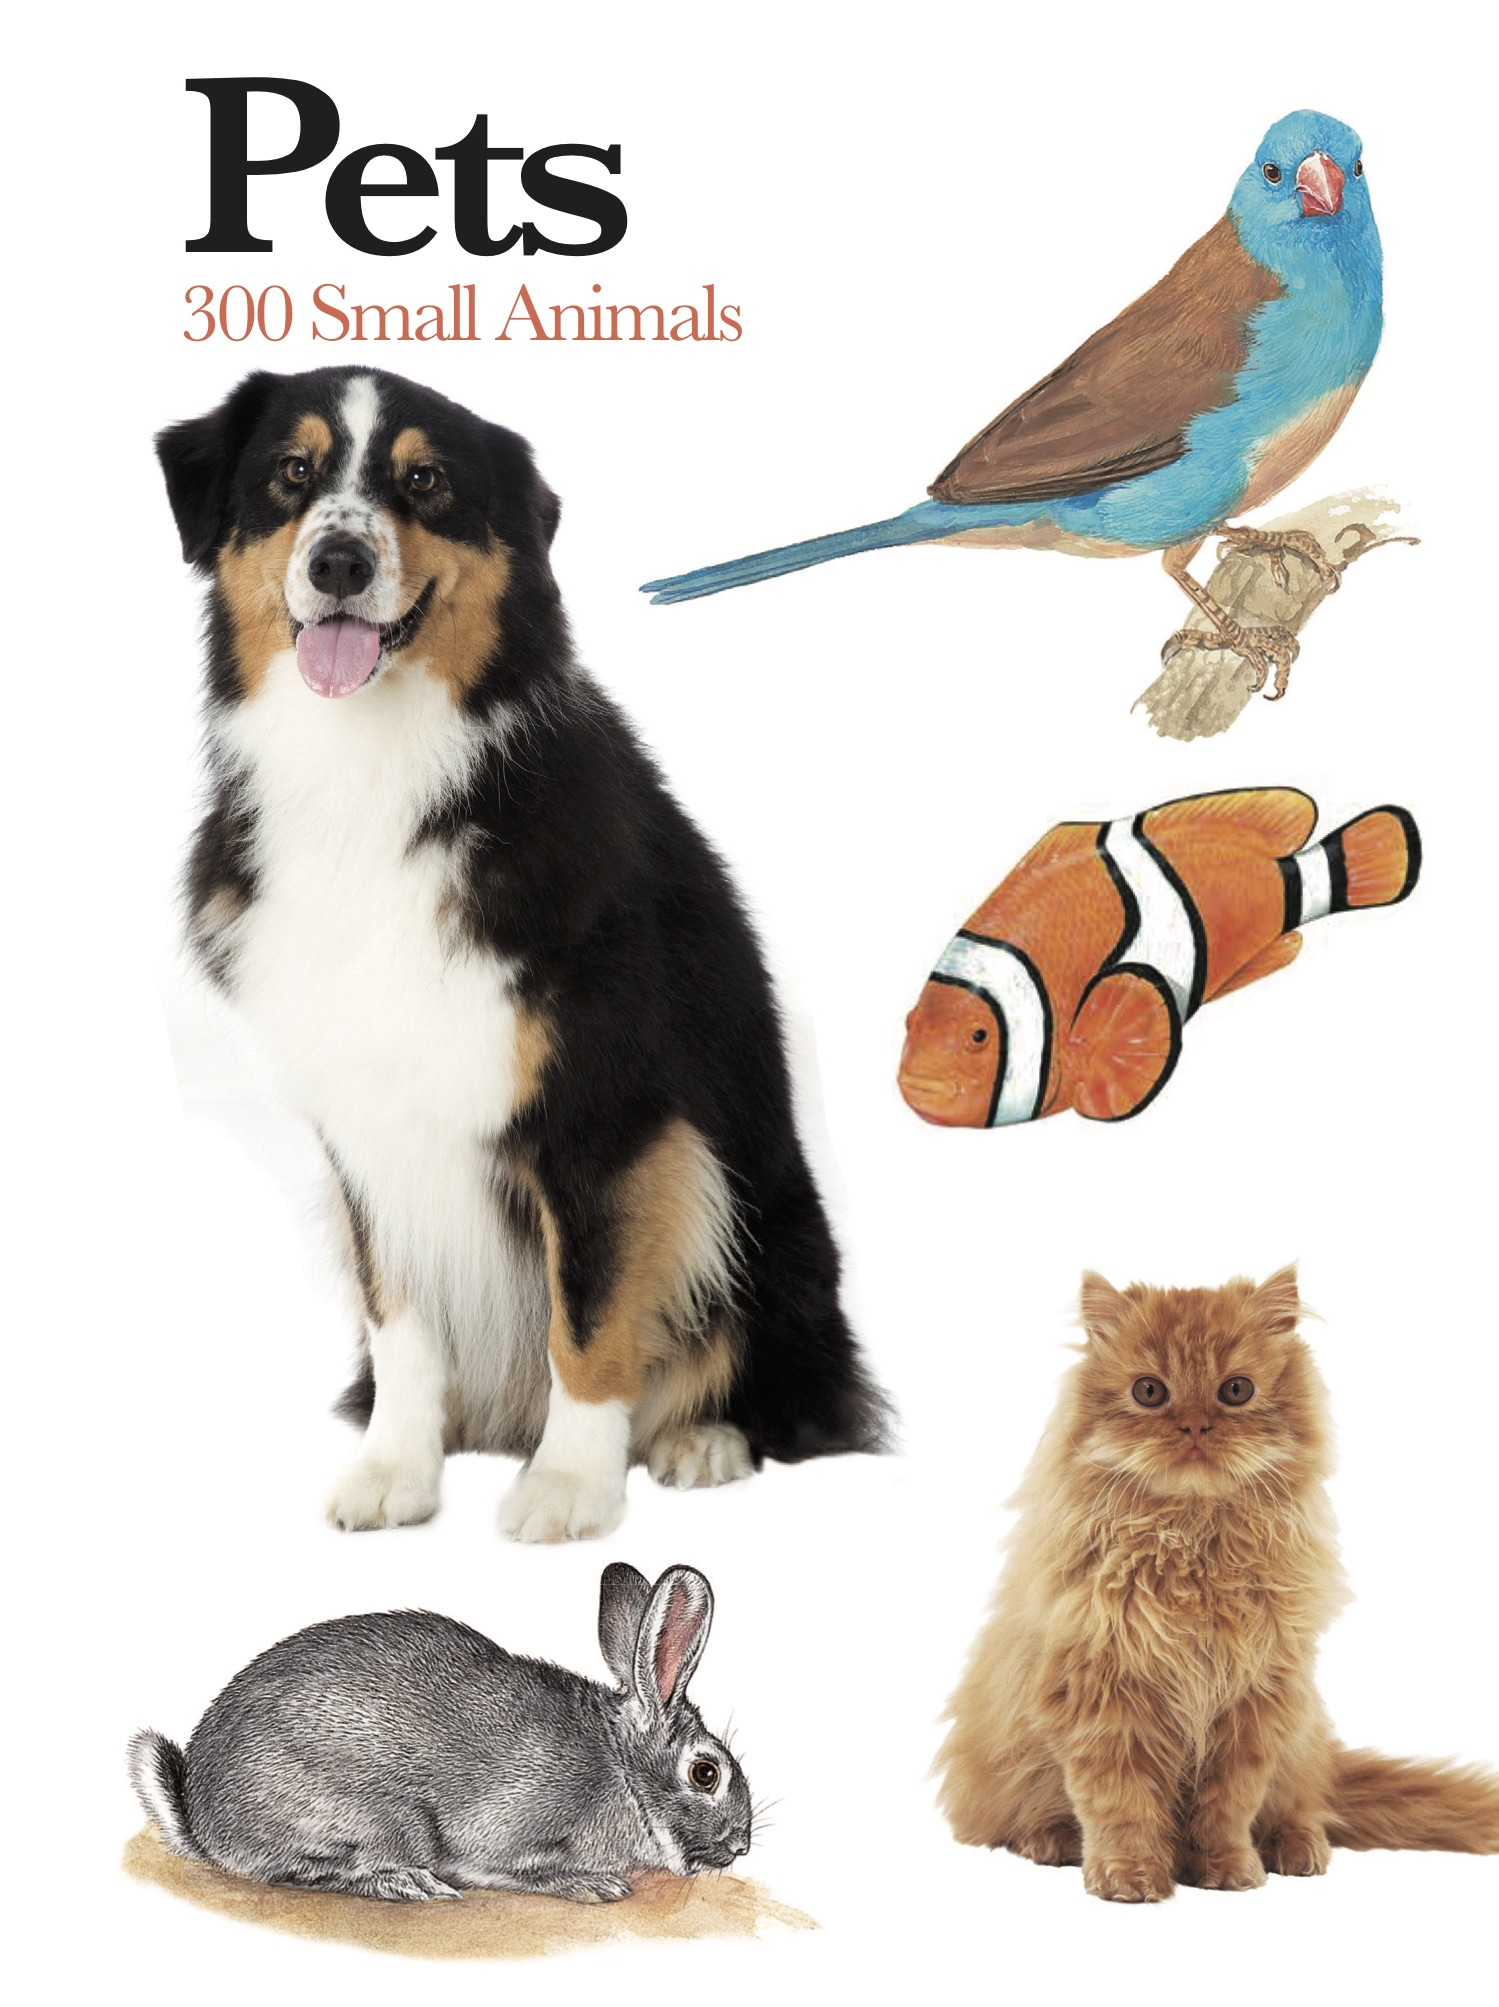 Pets flexi cover image